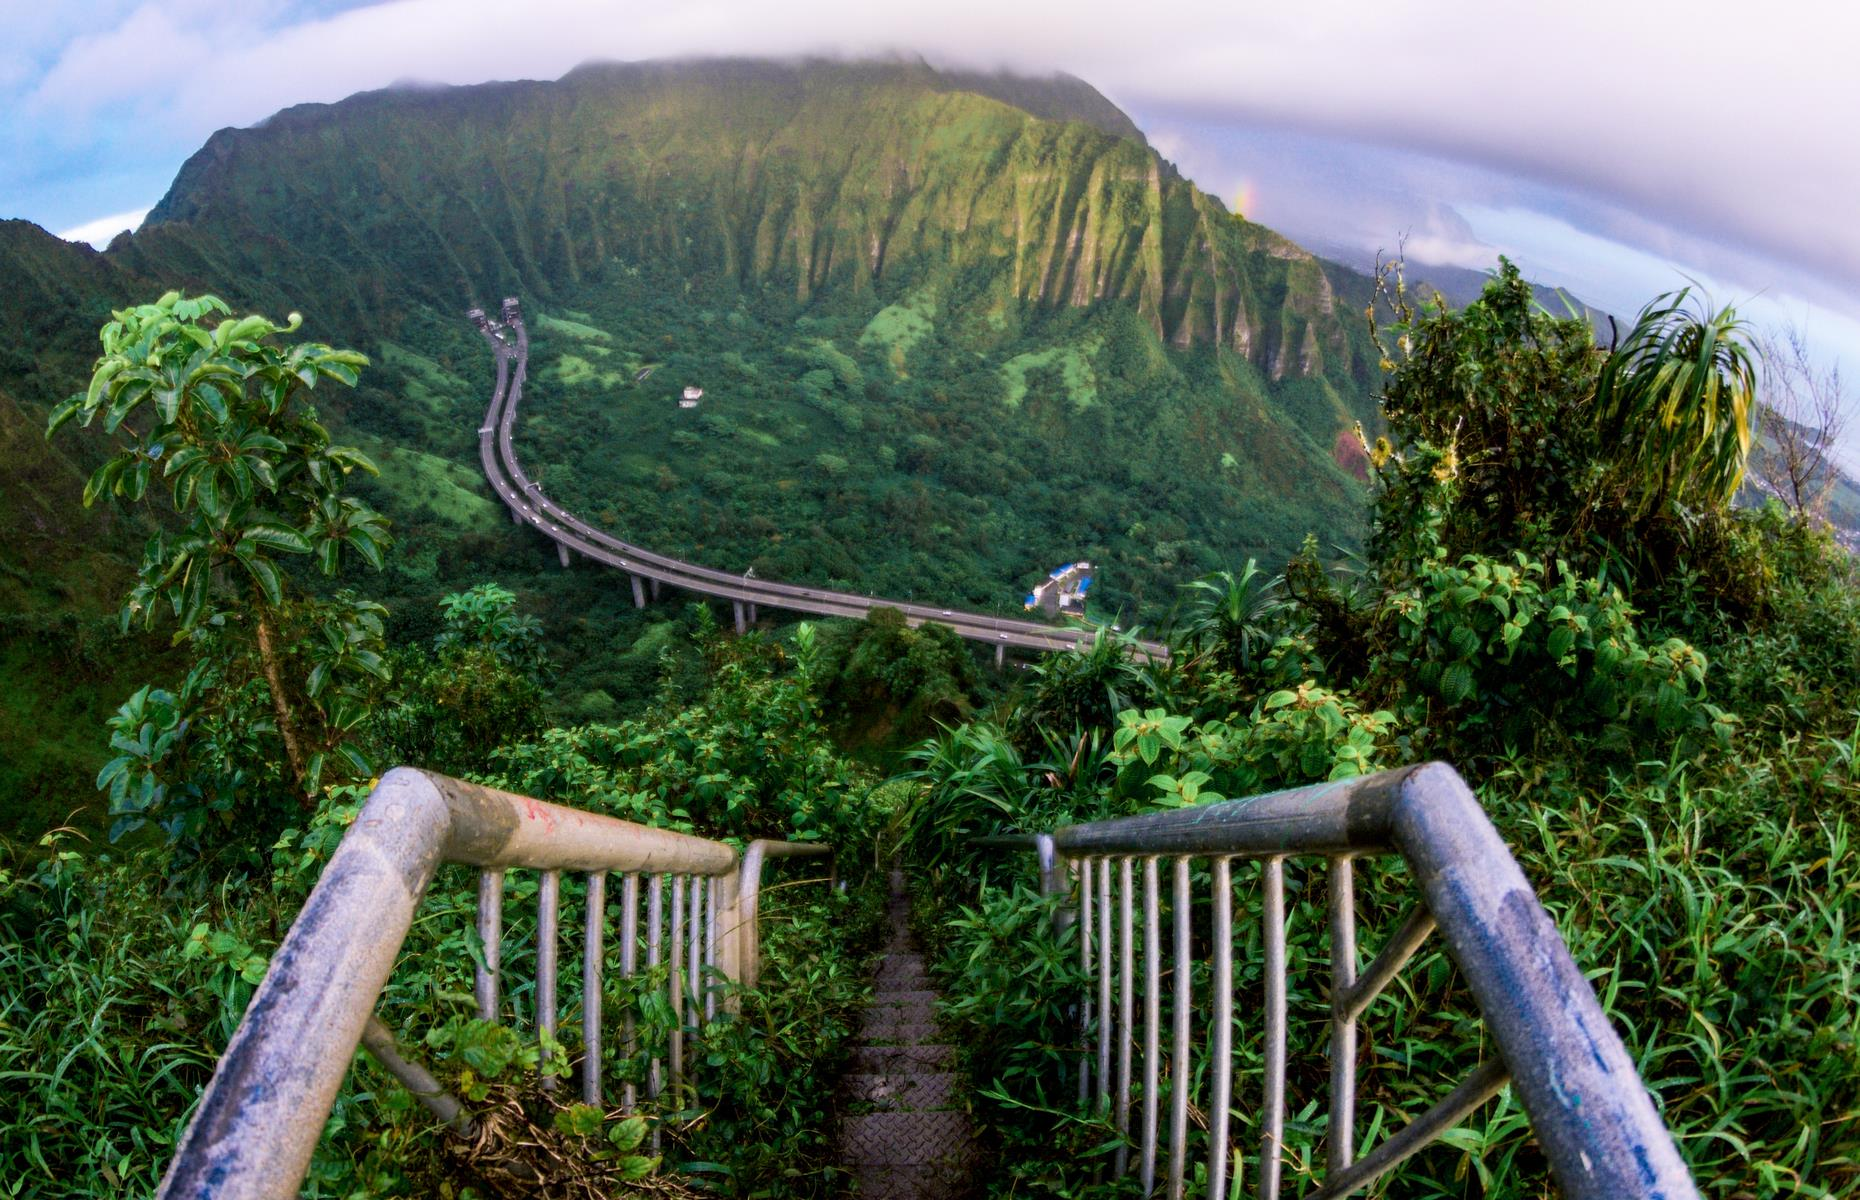 Slide 30 of 61: Nicknamed the Stairway to Heaven for good reason, this dizzying staircase lines Oahu's green Ko'olau mountains, and was built back in 1942 by the US Navy. Sadly, due to safety concerns, there are calls for the stairs to be demolished. The stairs, almost 4,000 of them,have been closed to the public for several years nowand you'll face a hefty fine if you attempt to trespass on them. However, the (legal) Kulana'ahane trail, a challenging forested hike, offers decent views of the stairway while it remains.